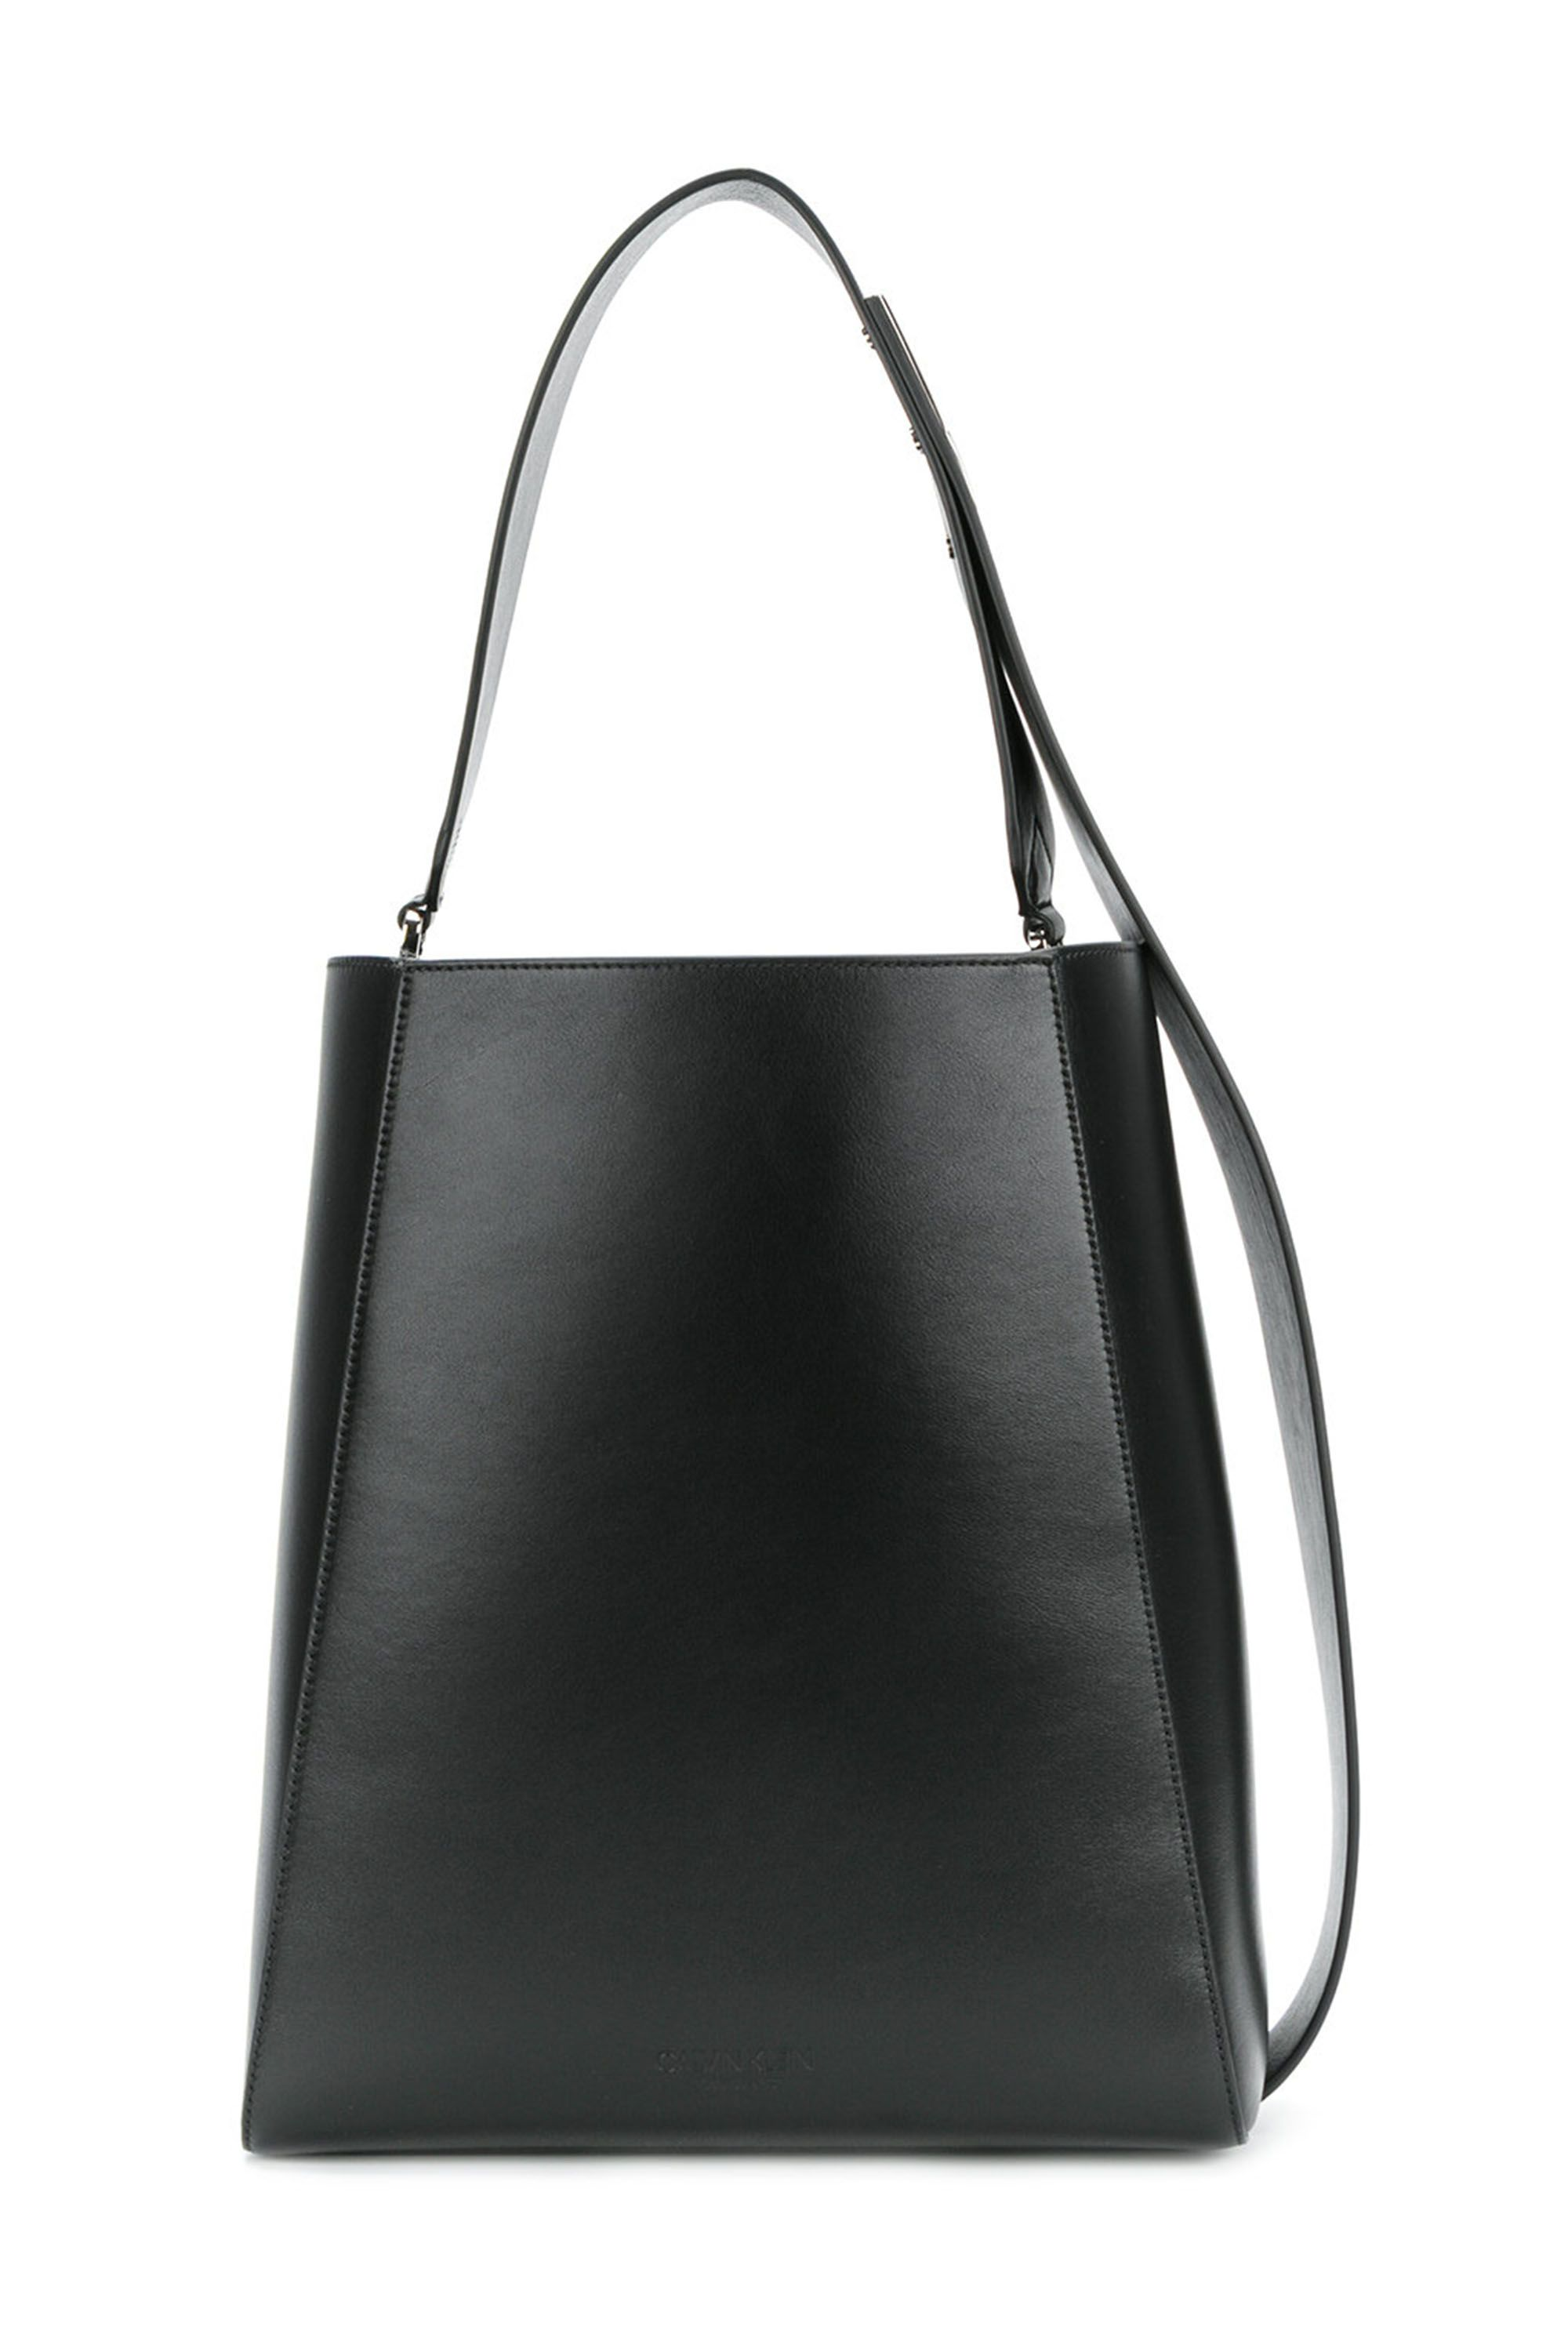 26231e501c60 17 Bucket Bags at Every Price Point - Best Bucket Bags to Buy Today